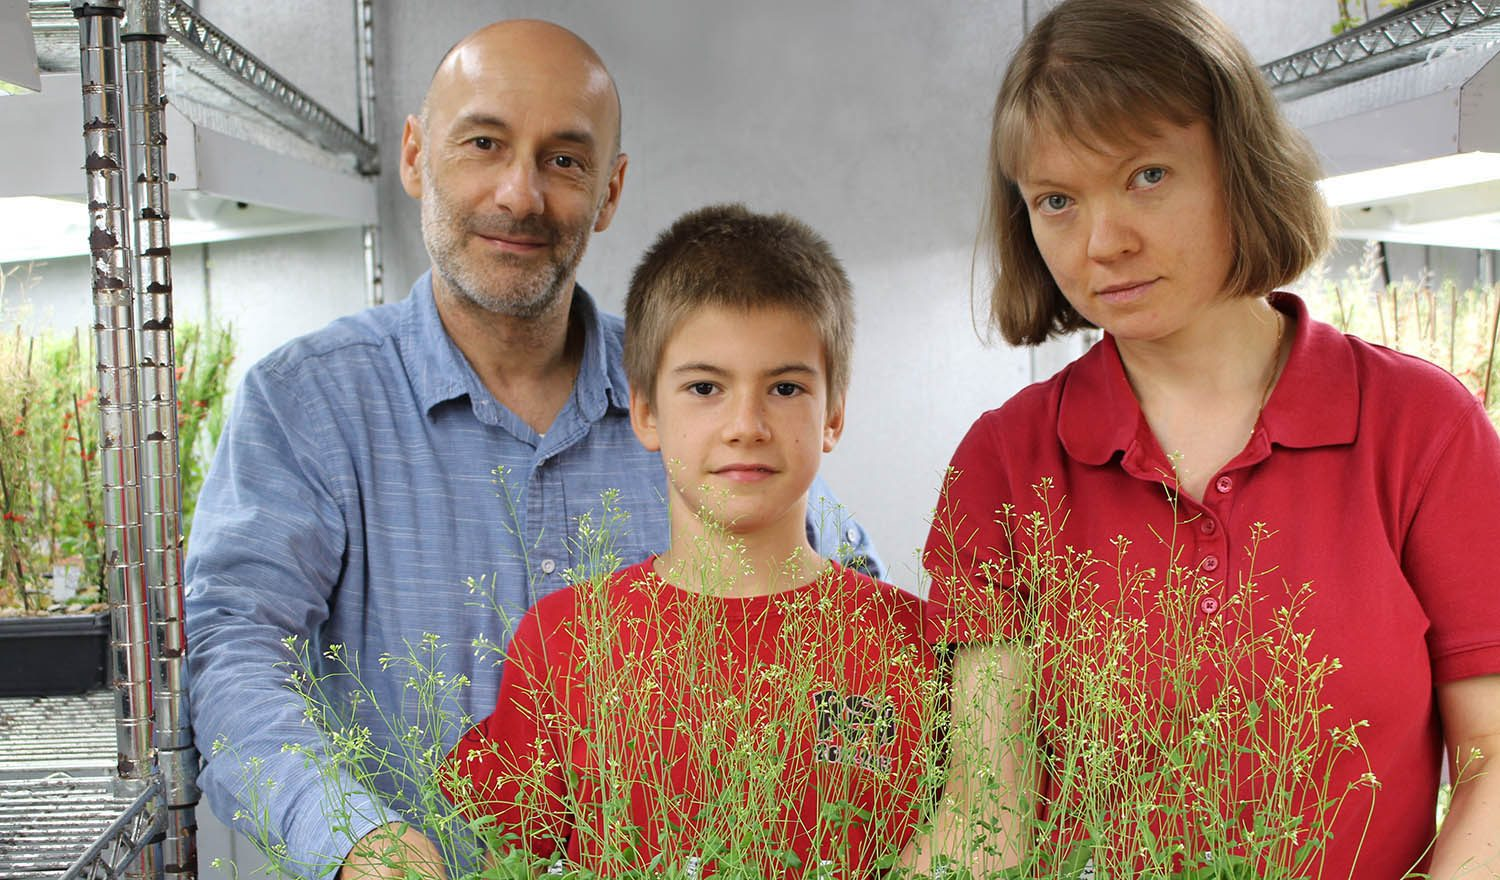 Antonio (center) with his parents Jose Alonso and Anna Stepanova of the Department of Plant and Microbial Biology.